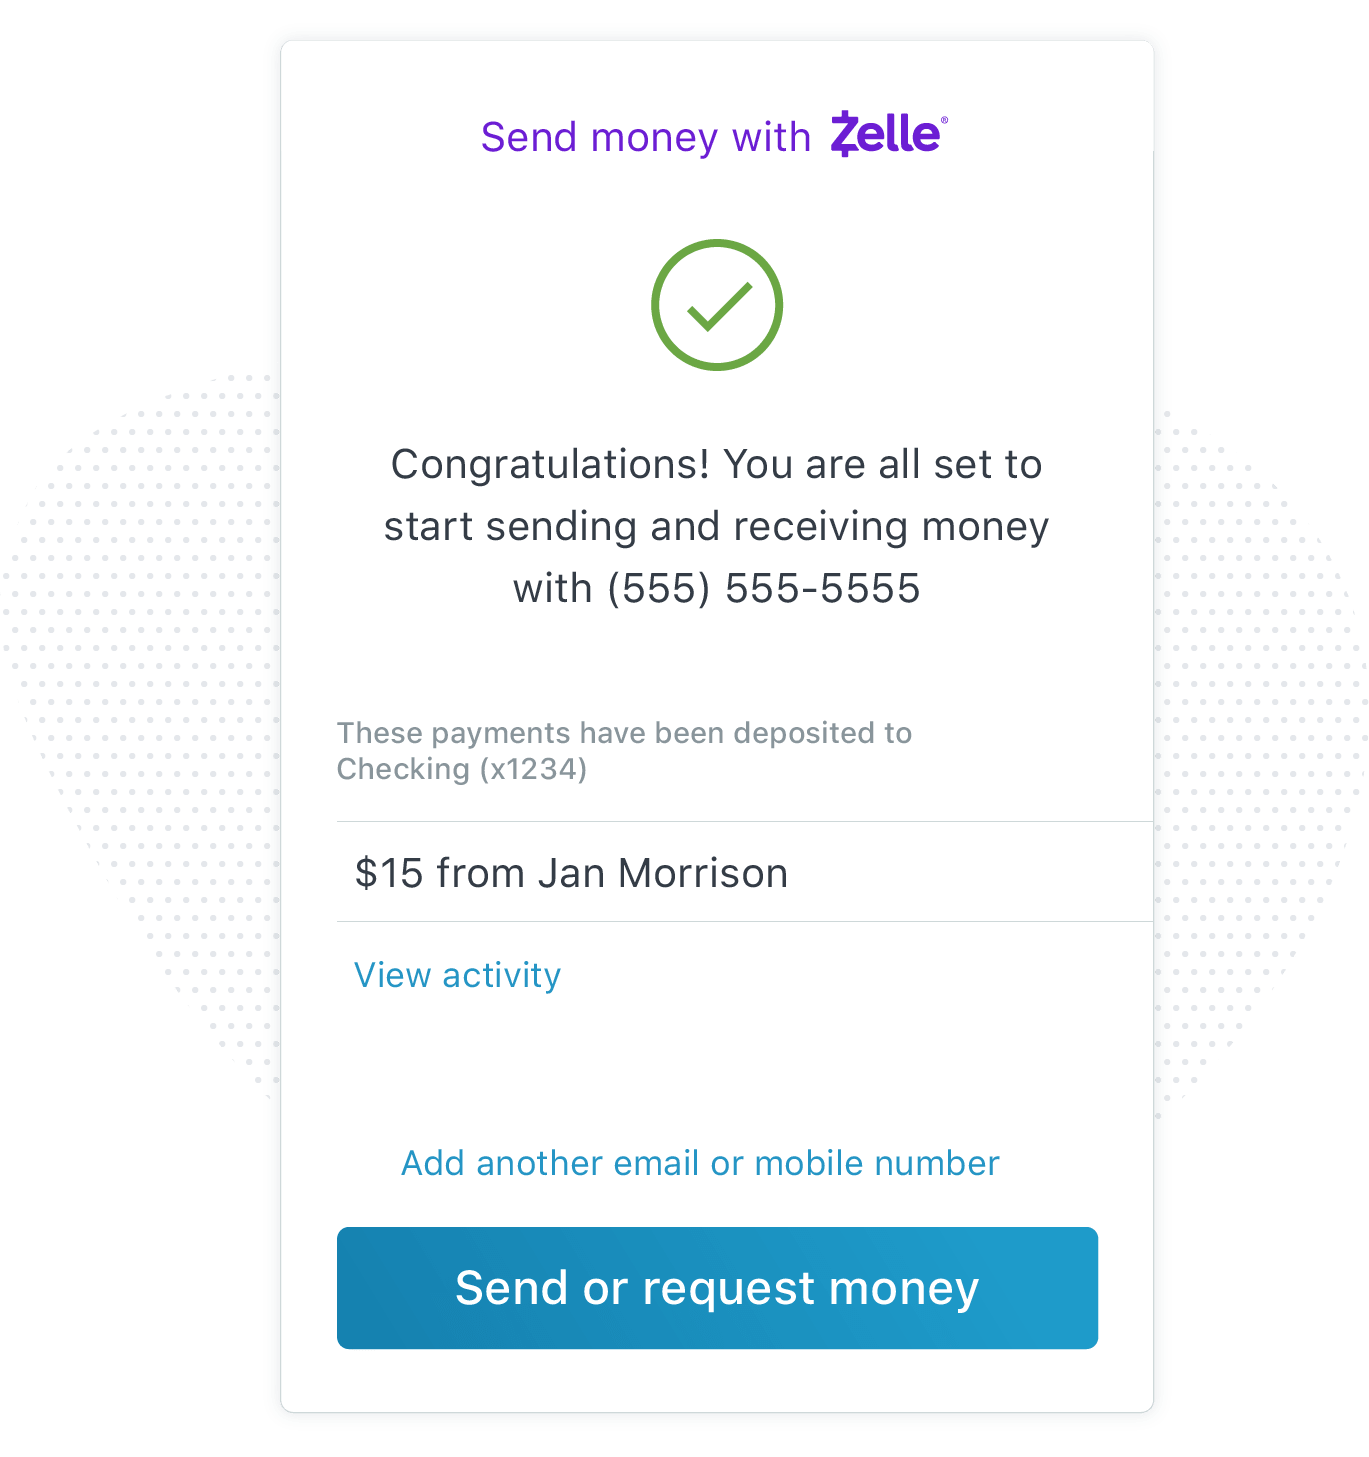 Zelle, setup personal payments